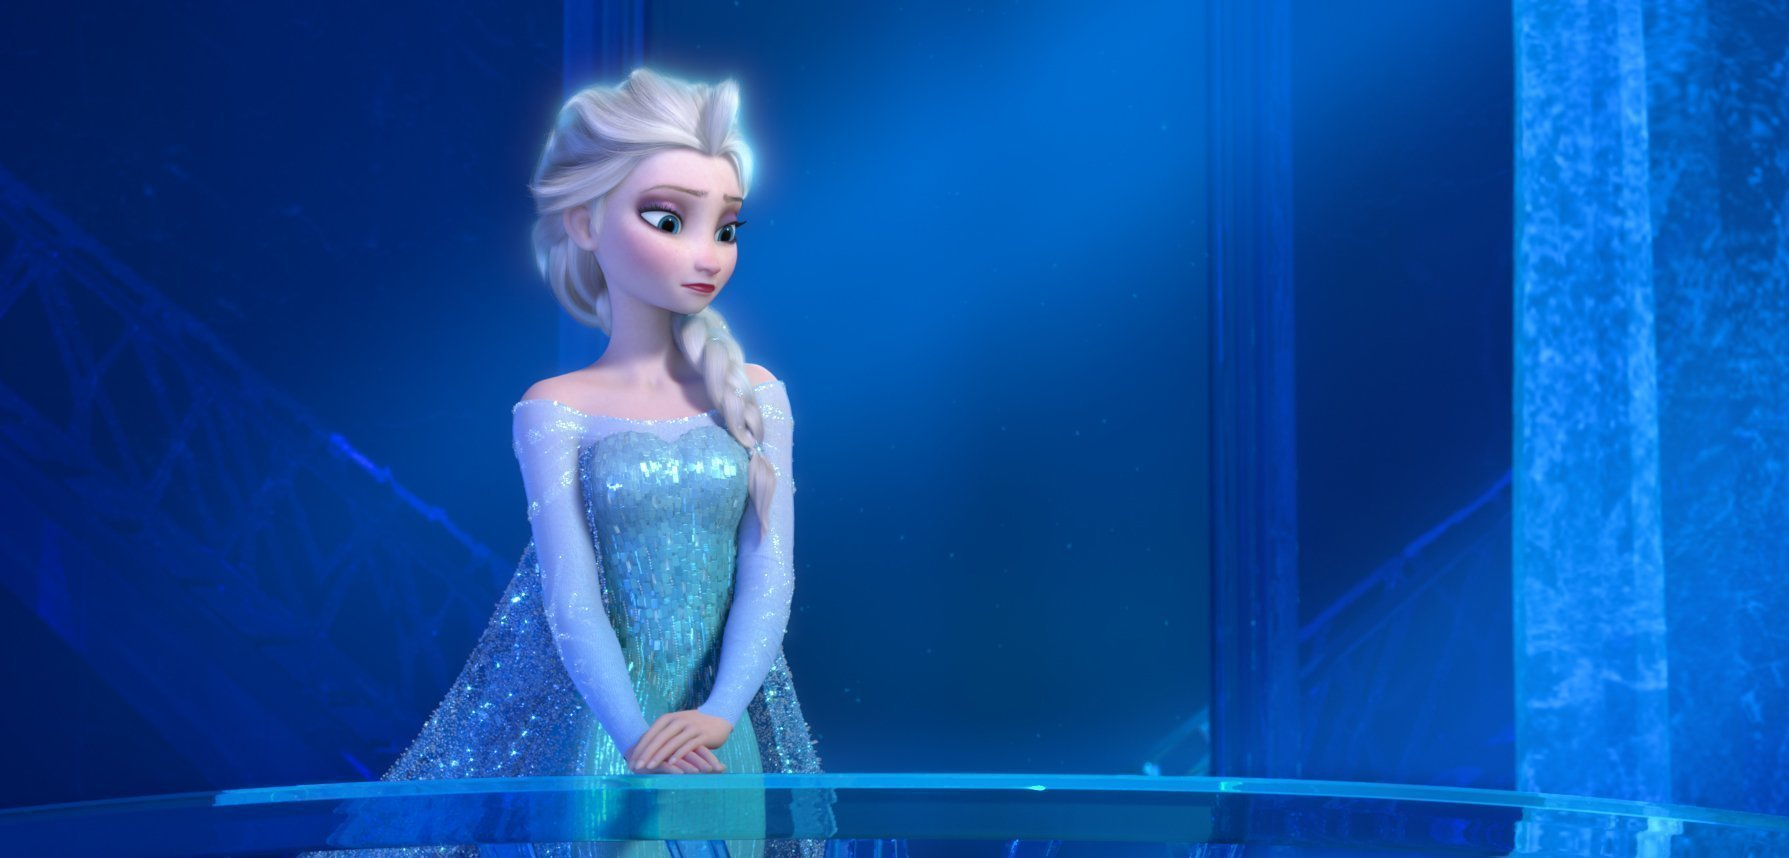 Harlan City Police Department Issue Apb For Elsa Yes Disneys